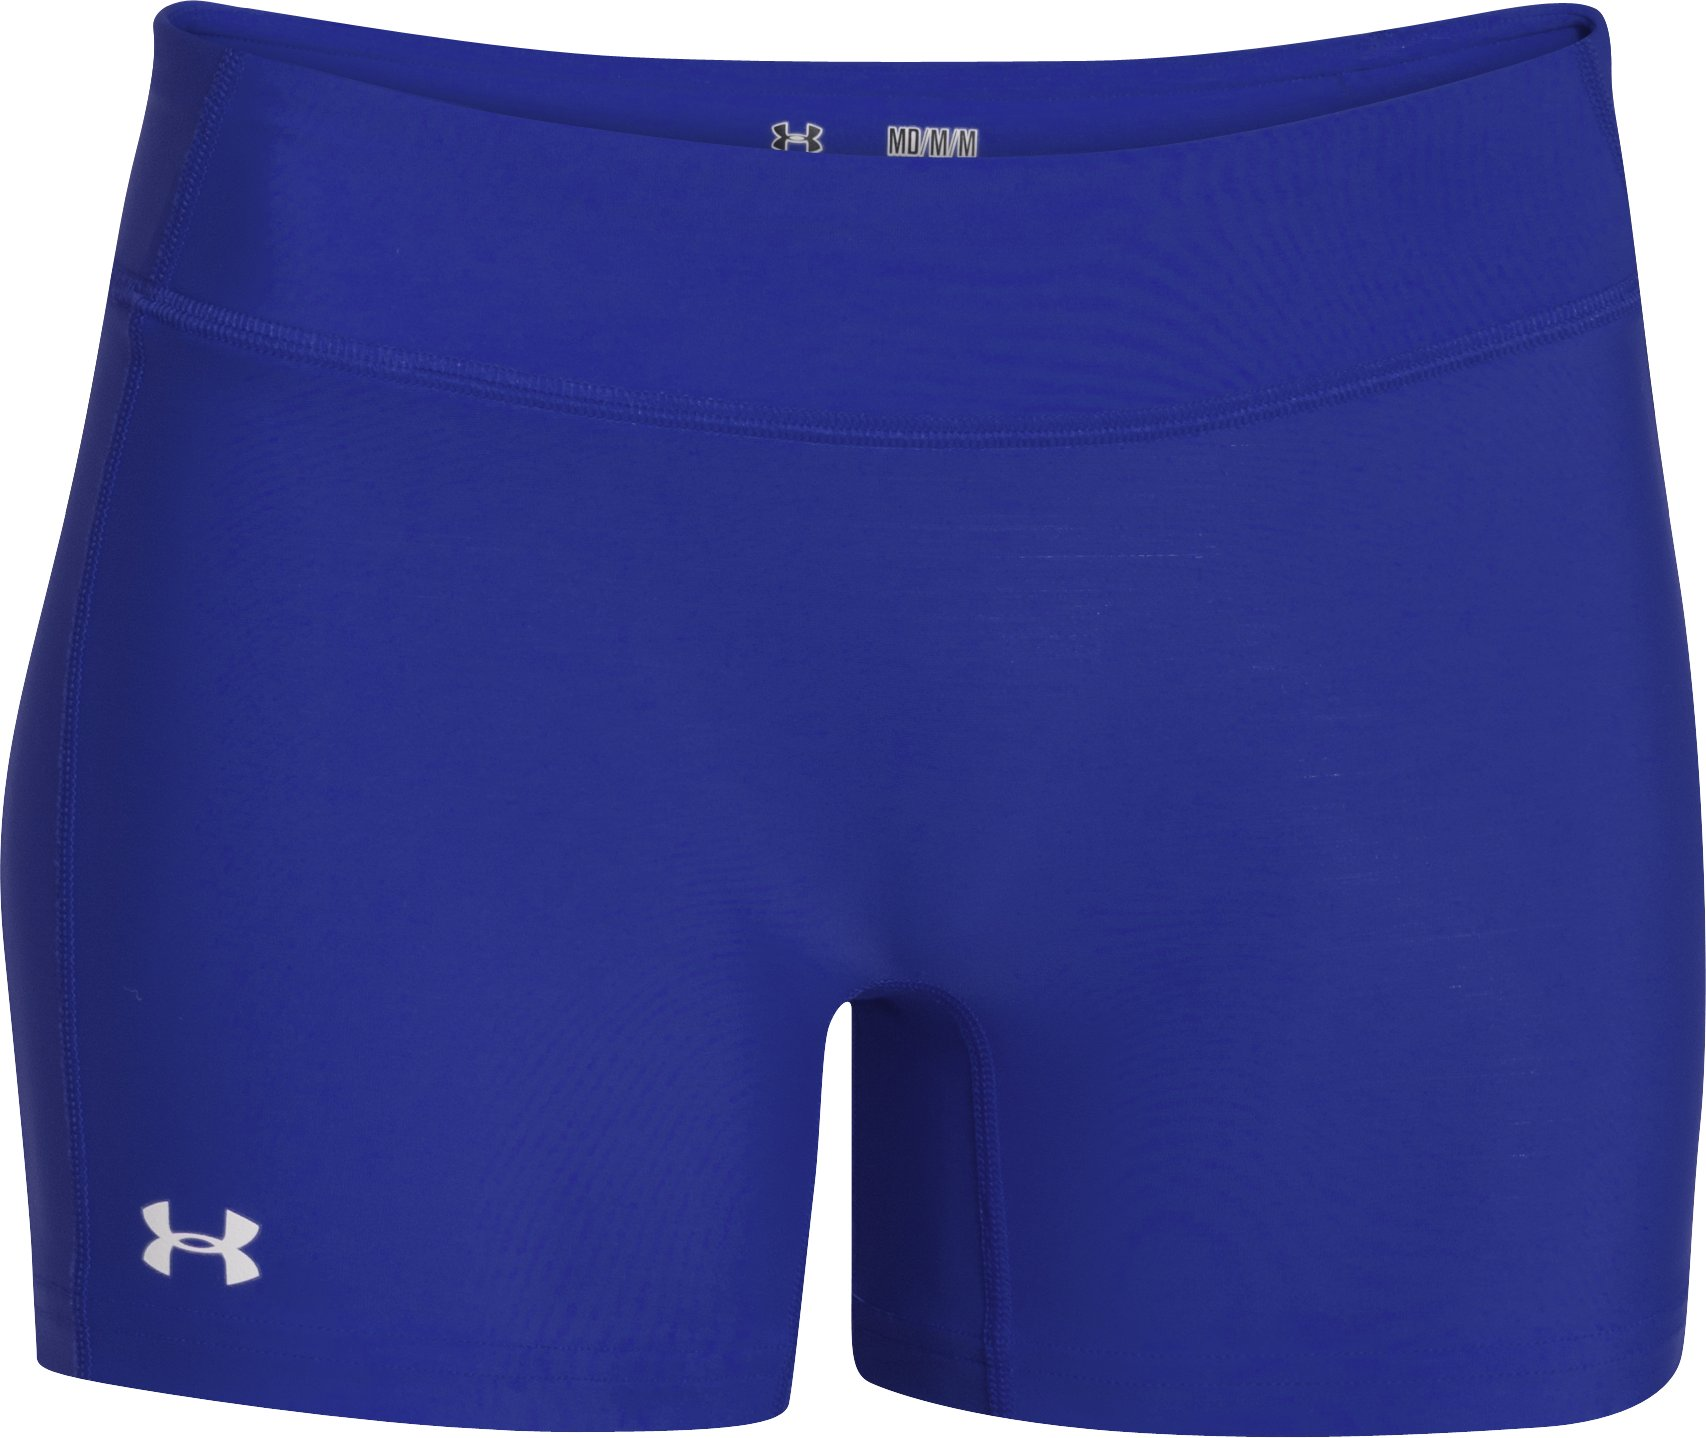 "Women's UA React 4"" Volleyball Shorts, Royal,"